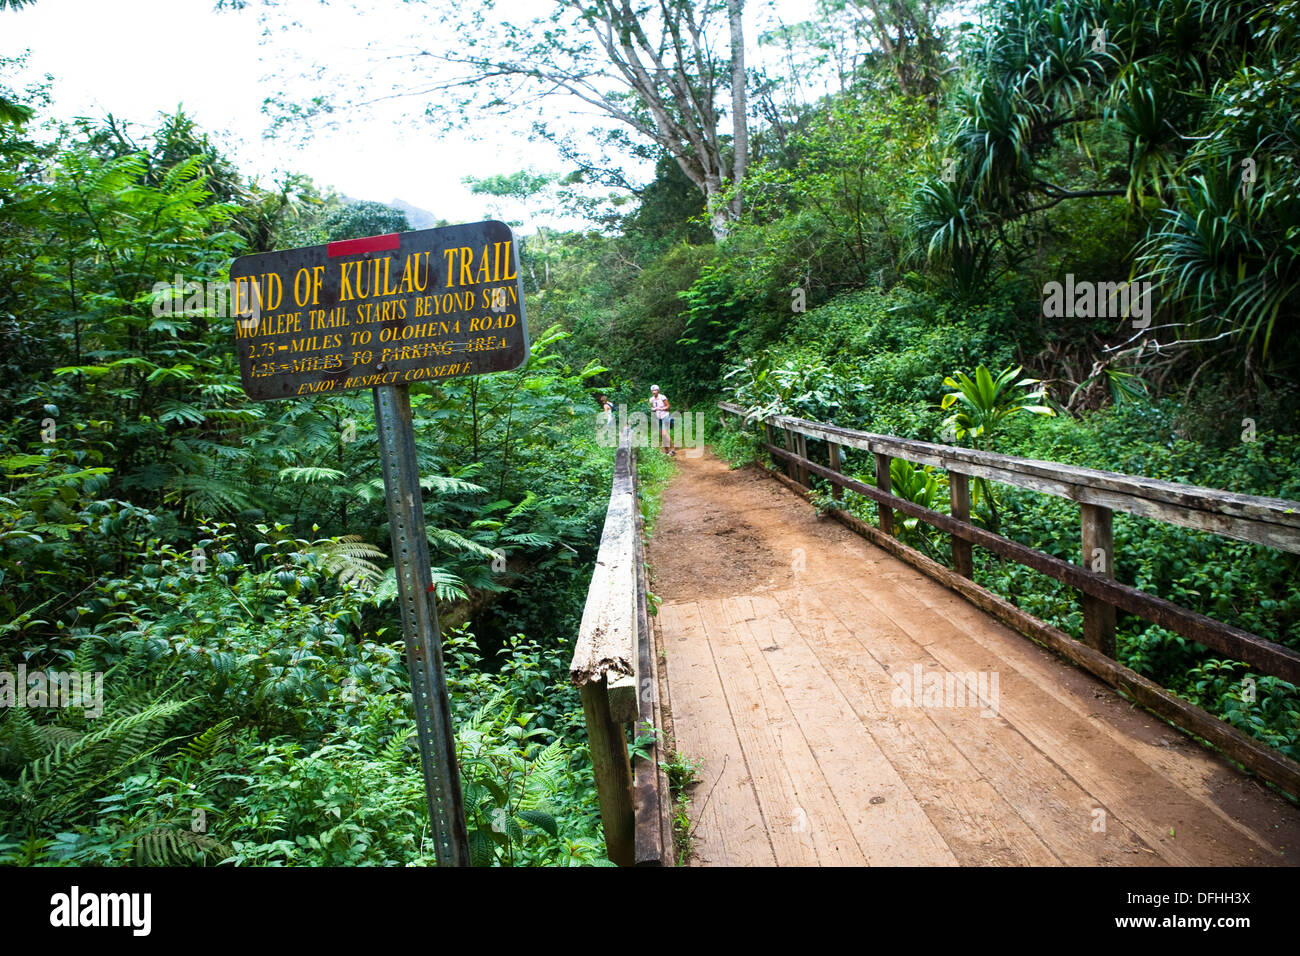 Merging of trails, the Kuilau and Moalepe trail begin near Wailua´s Keahua Arboretum and travels up to views of Mt. Waialeale - Stock Image